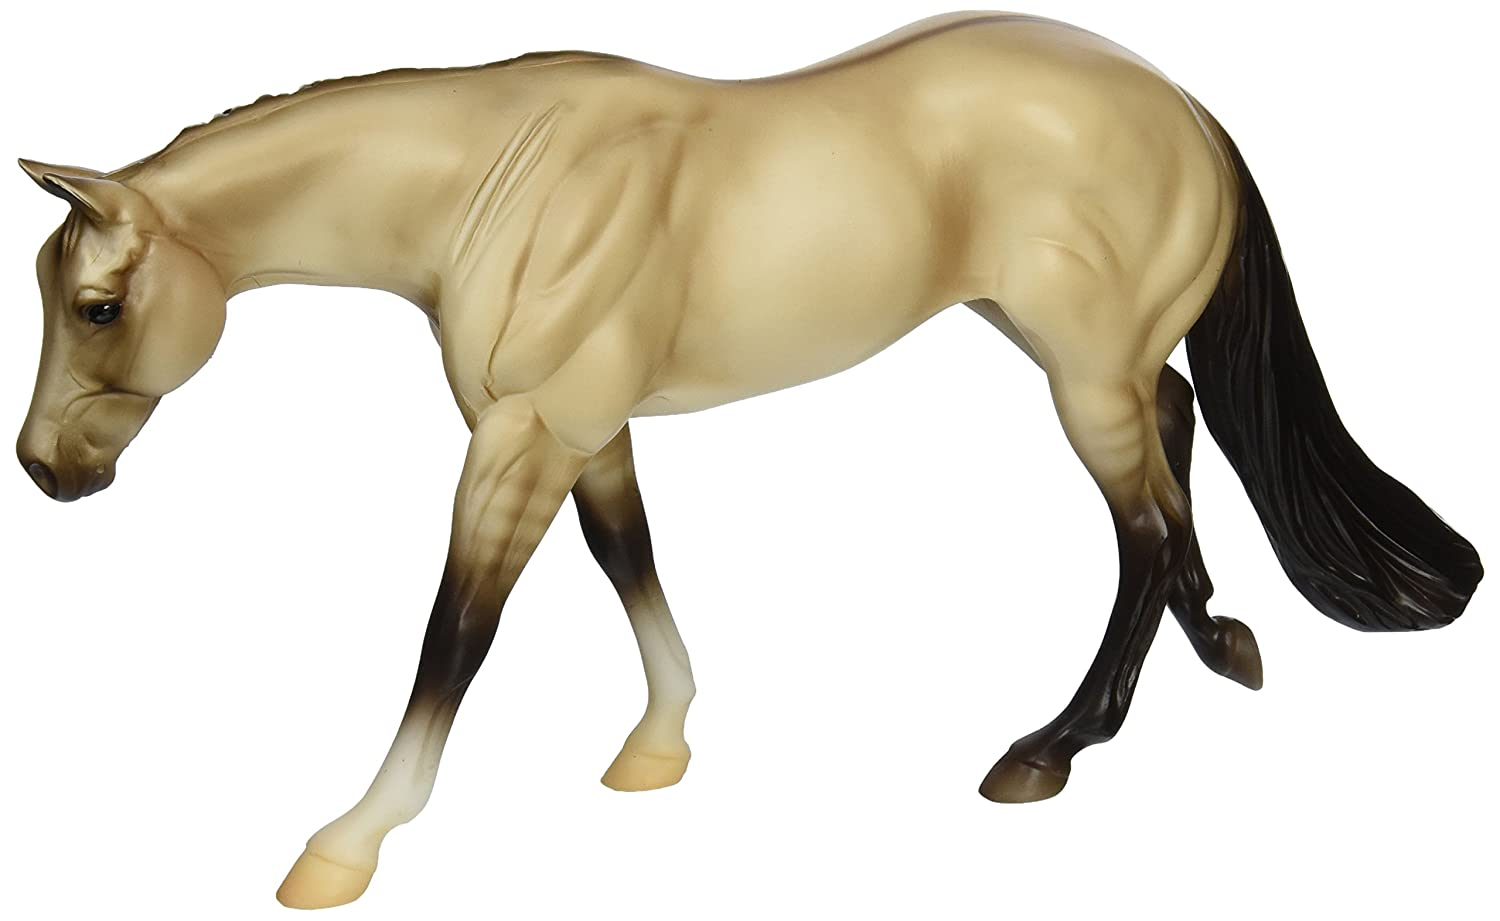 Toy Horses Breyer Breyer Dun Quarter Horse Toy